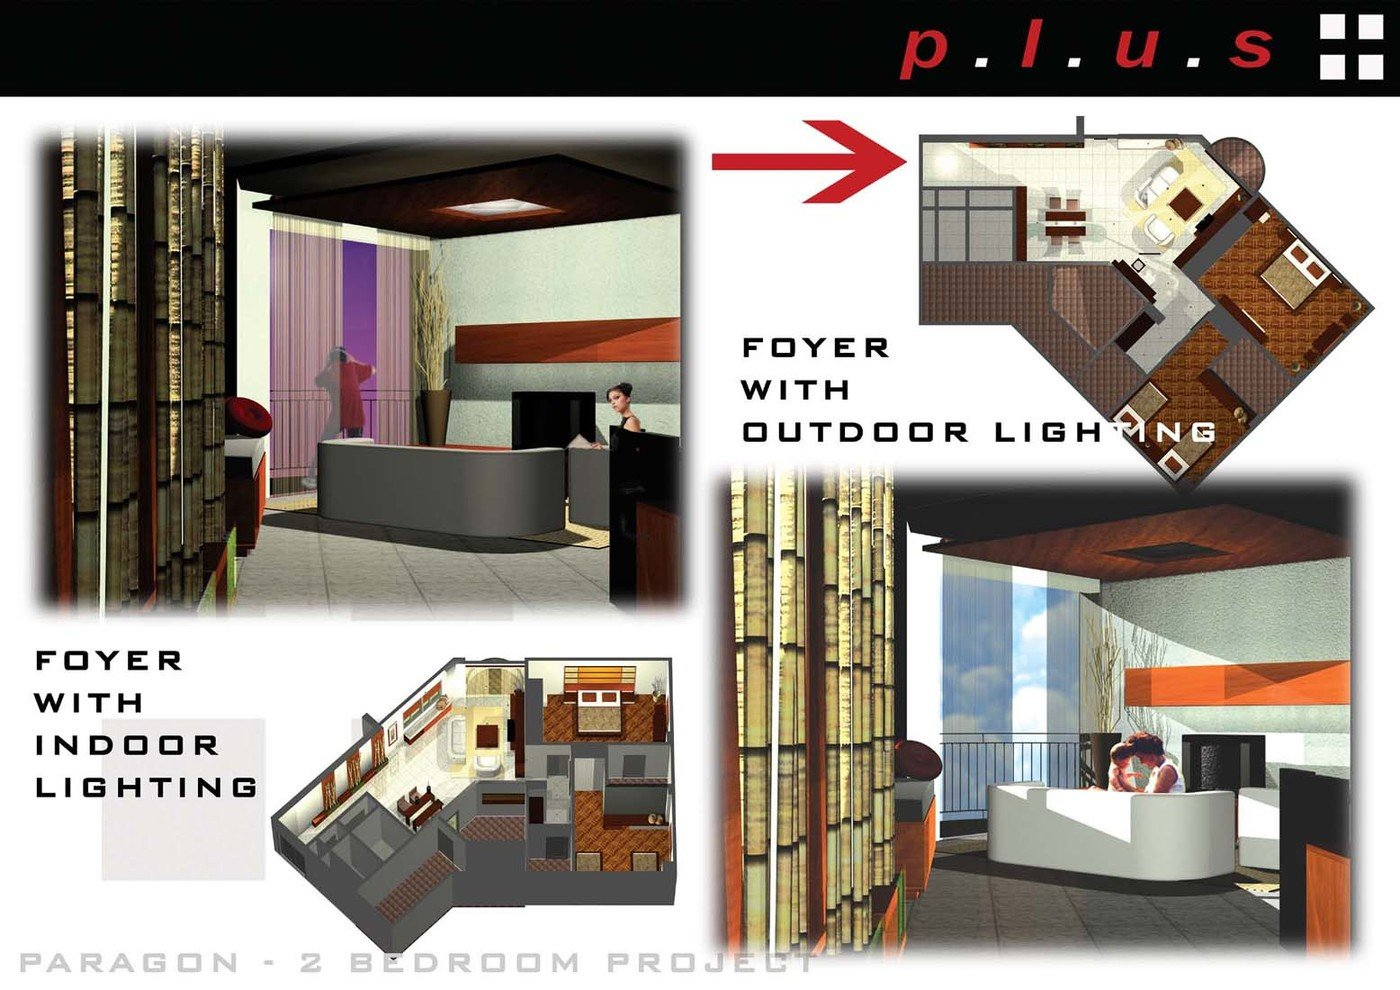 Project Description 2 Two Bedroom Apartment Presentation Team Plus Design Member Of 4 Four Jobs Share By Audryn